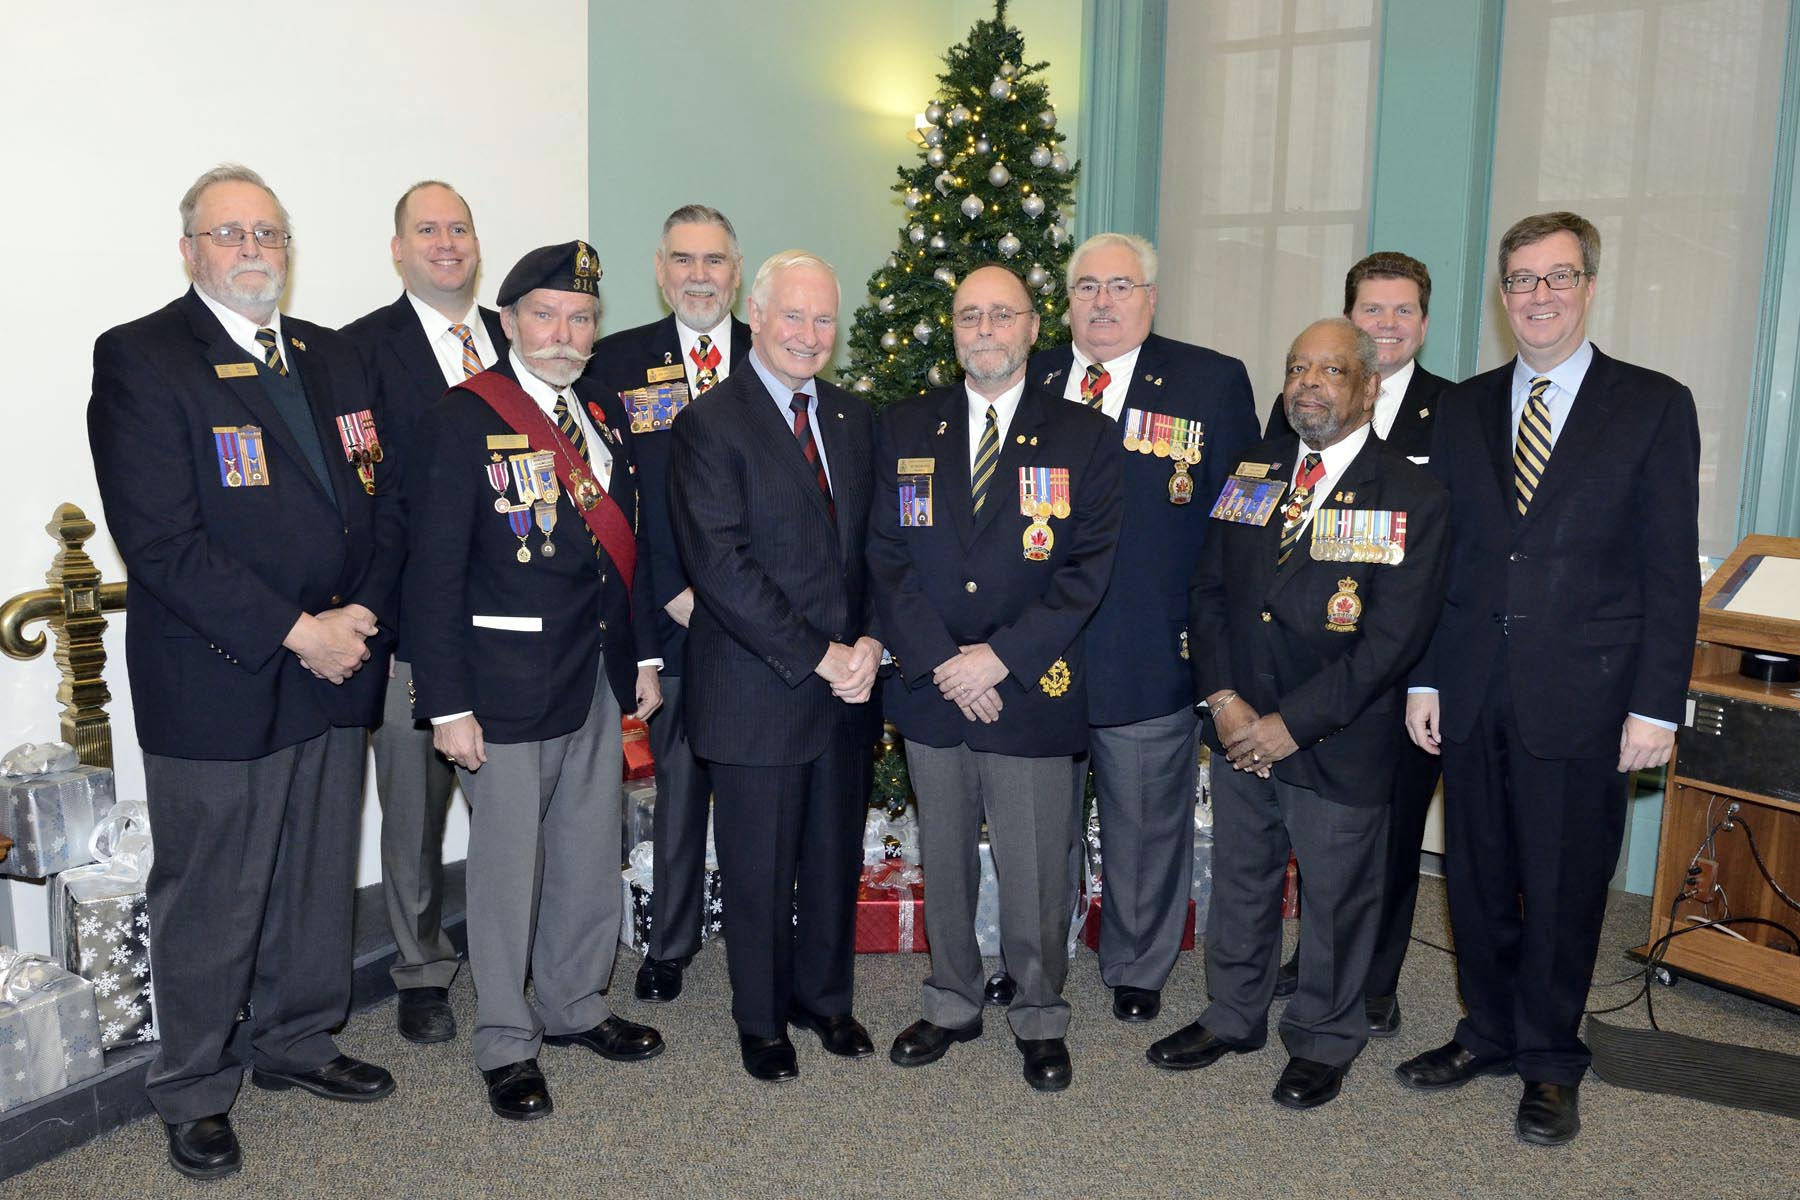 Members of the Royal Canadian Legion also attended the event.